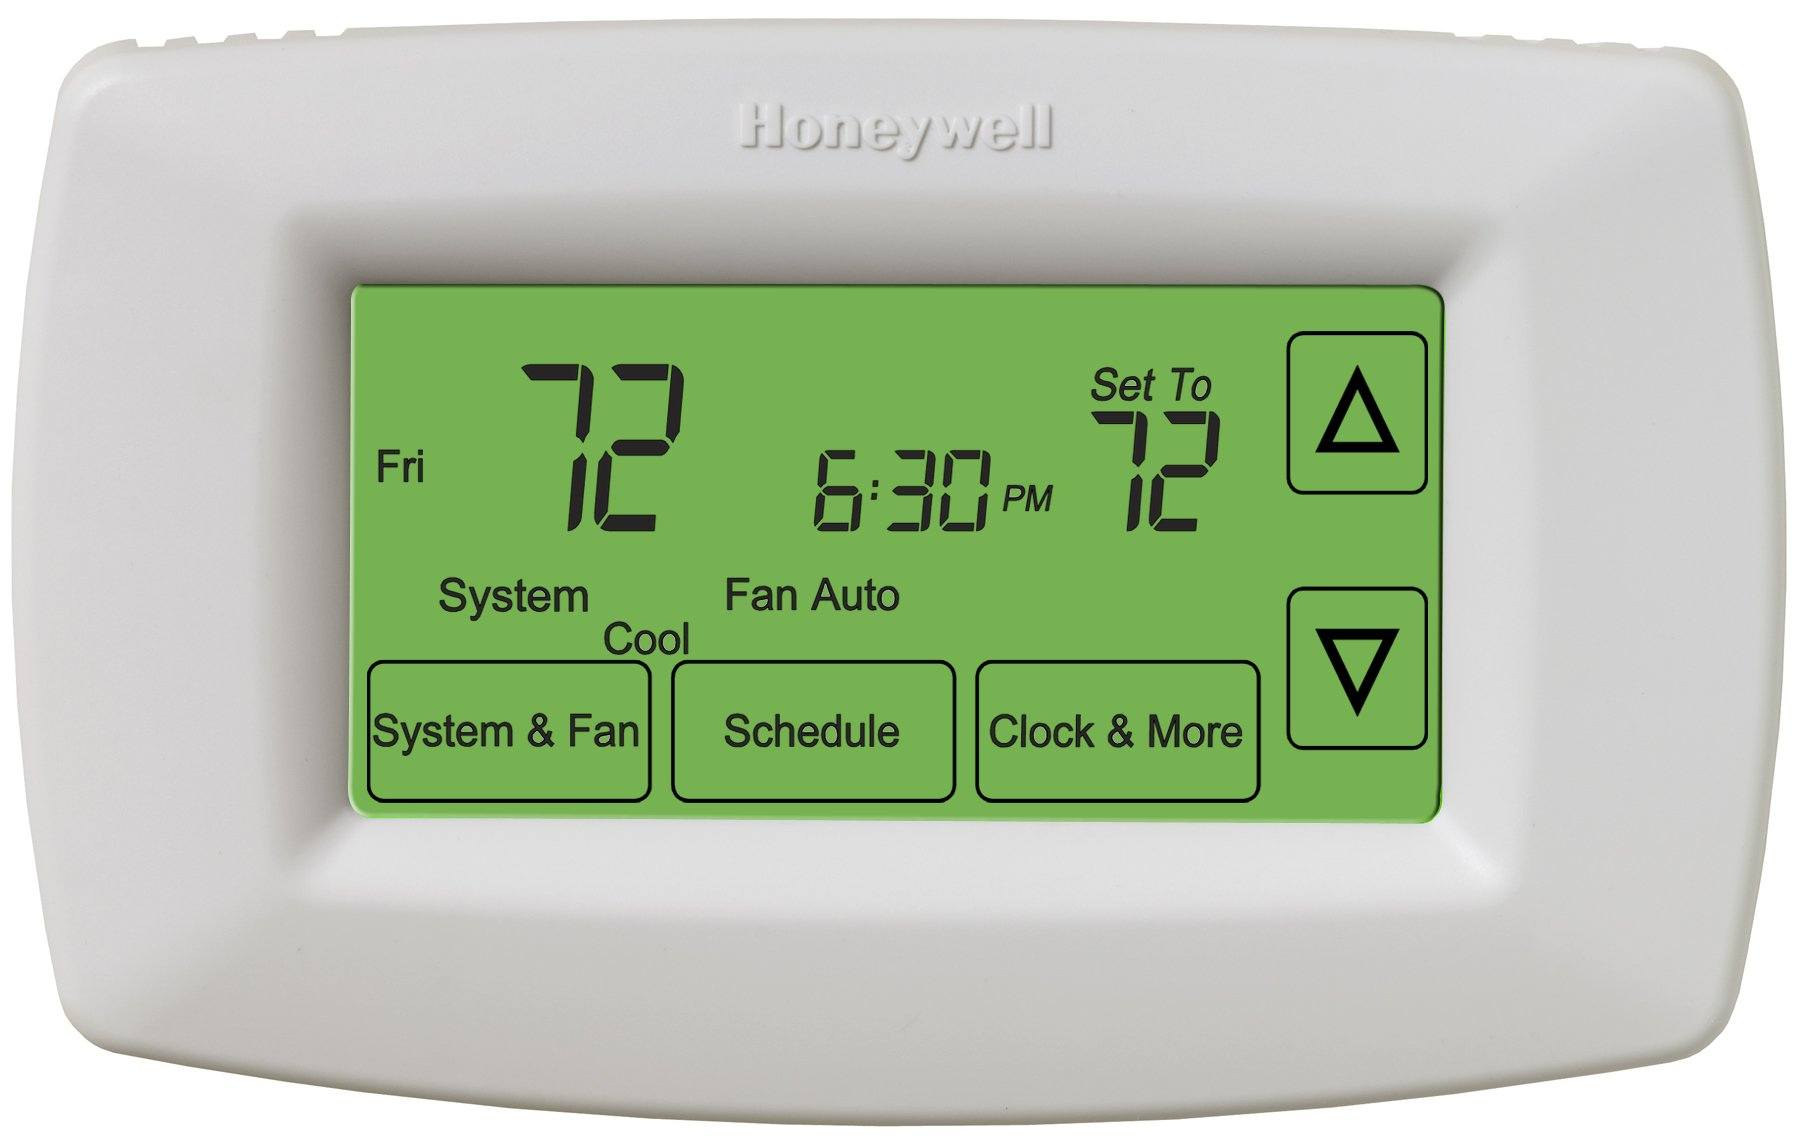 Honeywell RTH7600D Touchscreen Programmable Thermostat